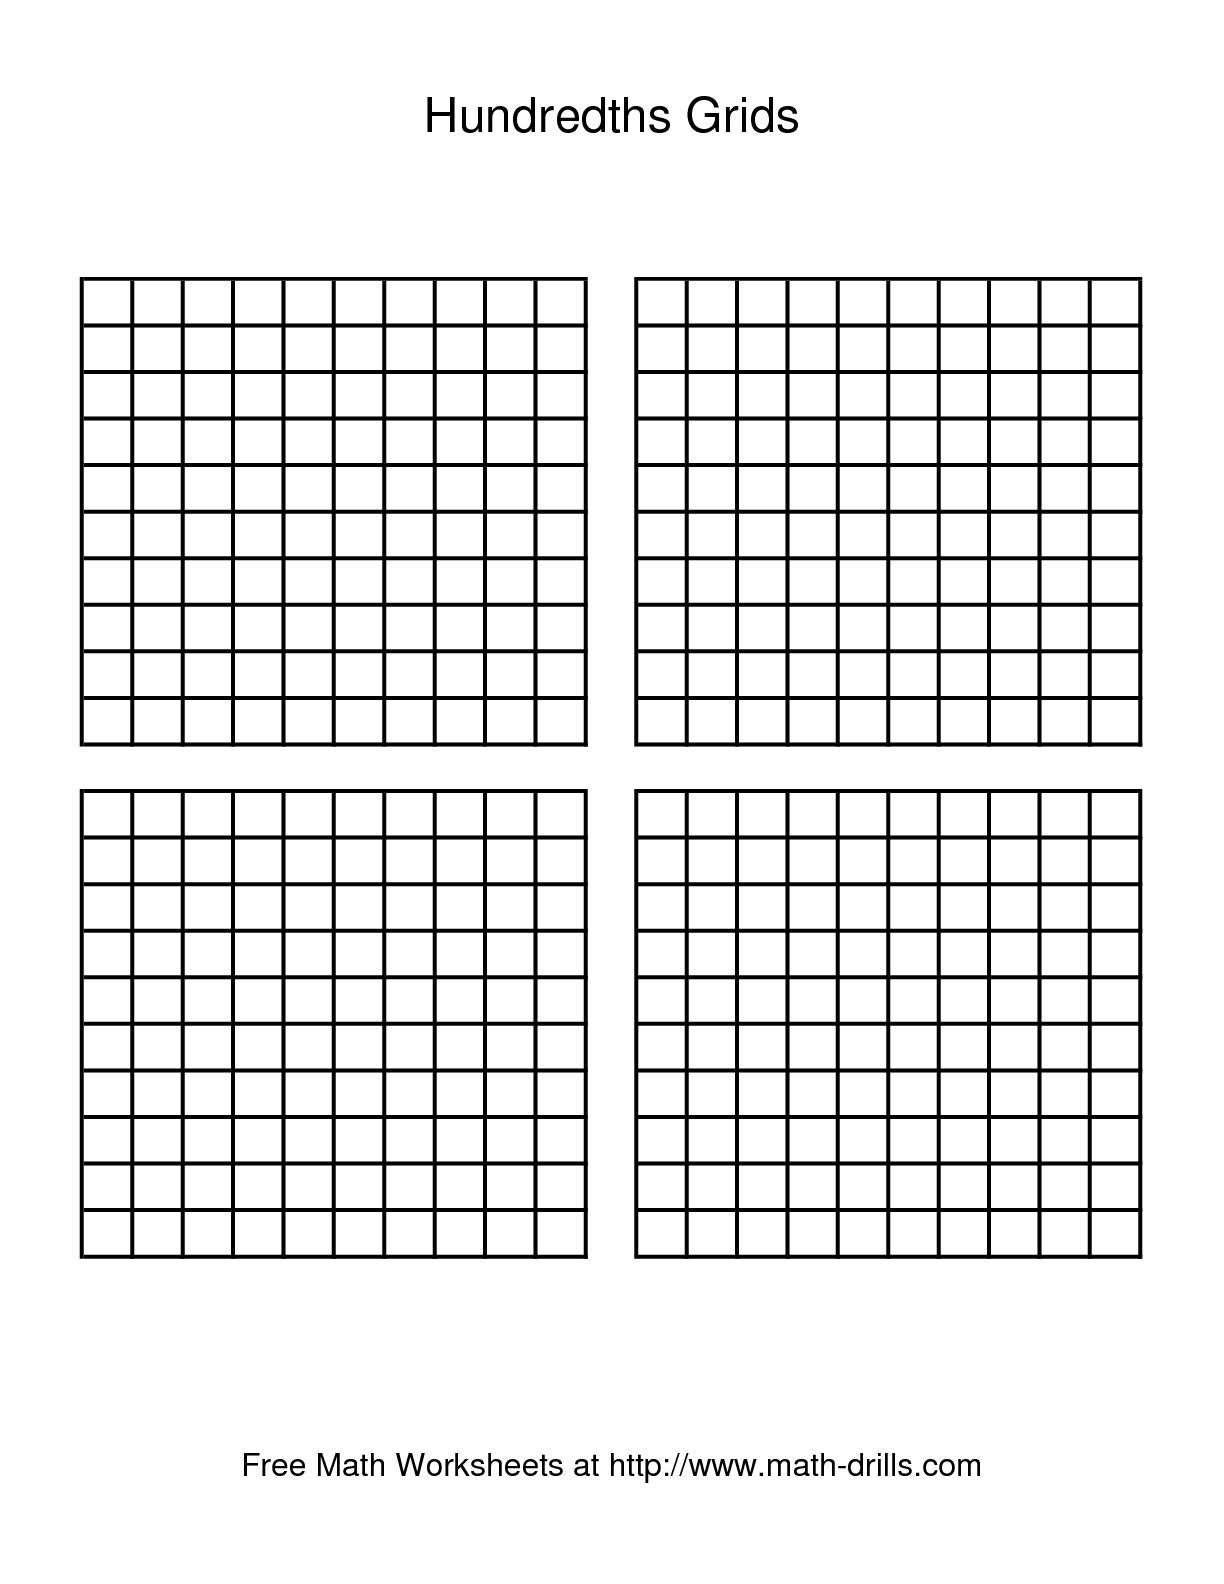 worksheet Grid Worksheets the hundredths grid decimals worksheet decimal pinterest worksheet